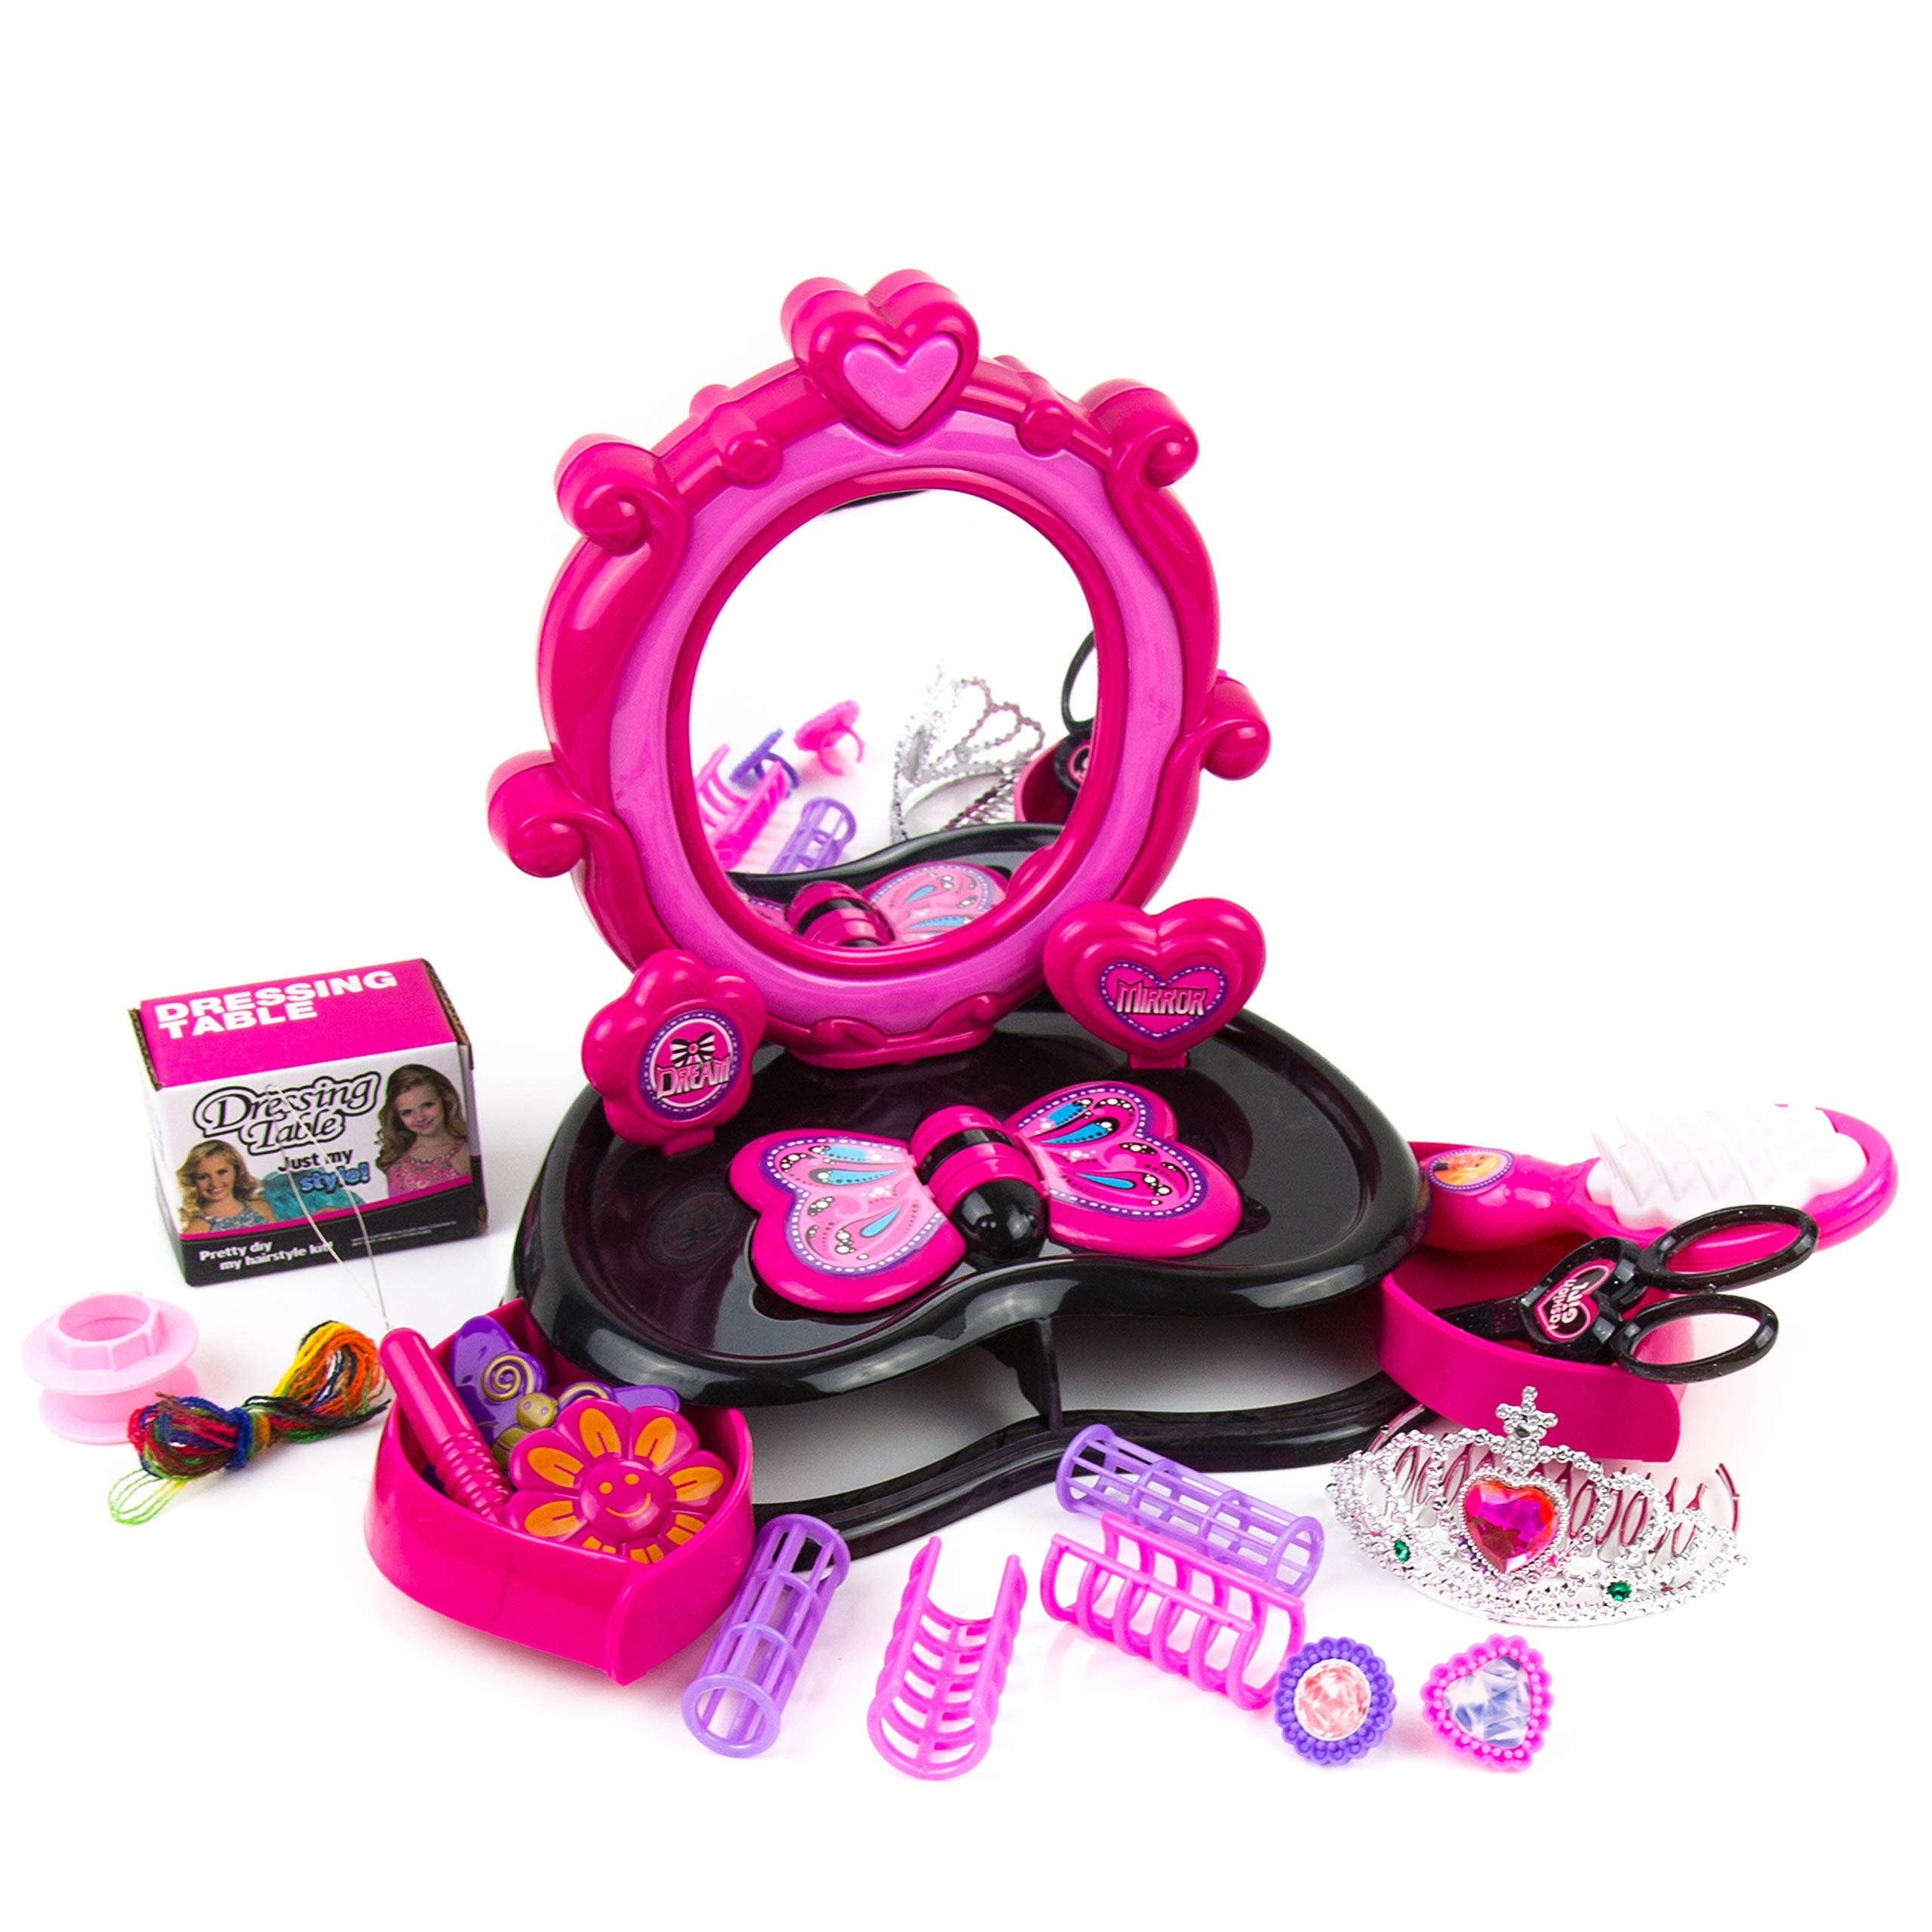 Toysery Girls Dressing Table - Comes with Lights, Sounds, Chair, Fashion and Makeup Accessories Materials - Great for Group Play - Perfect Dream Gift for Kids by Toysery